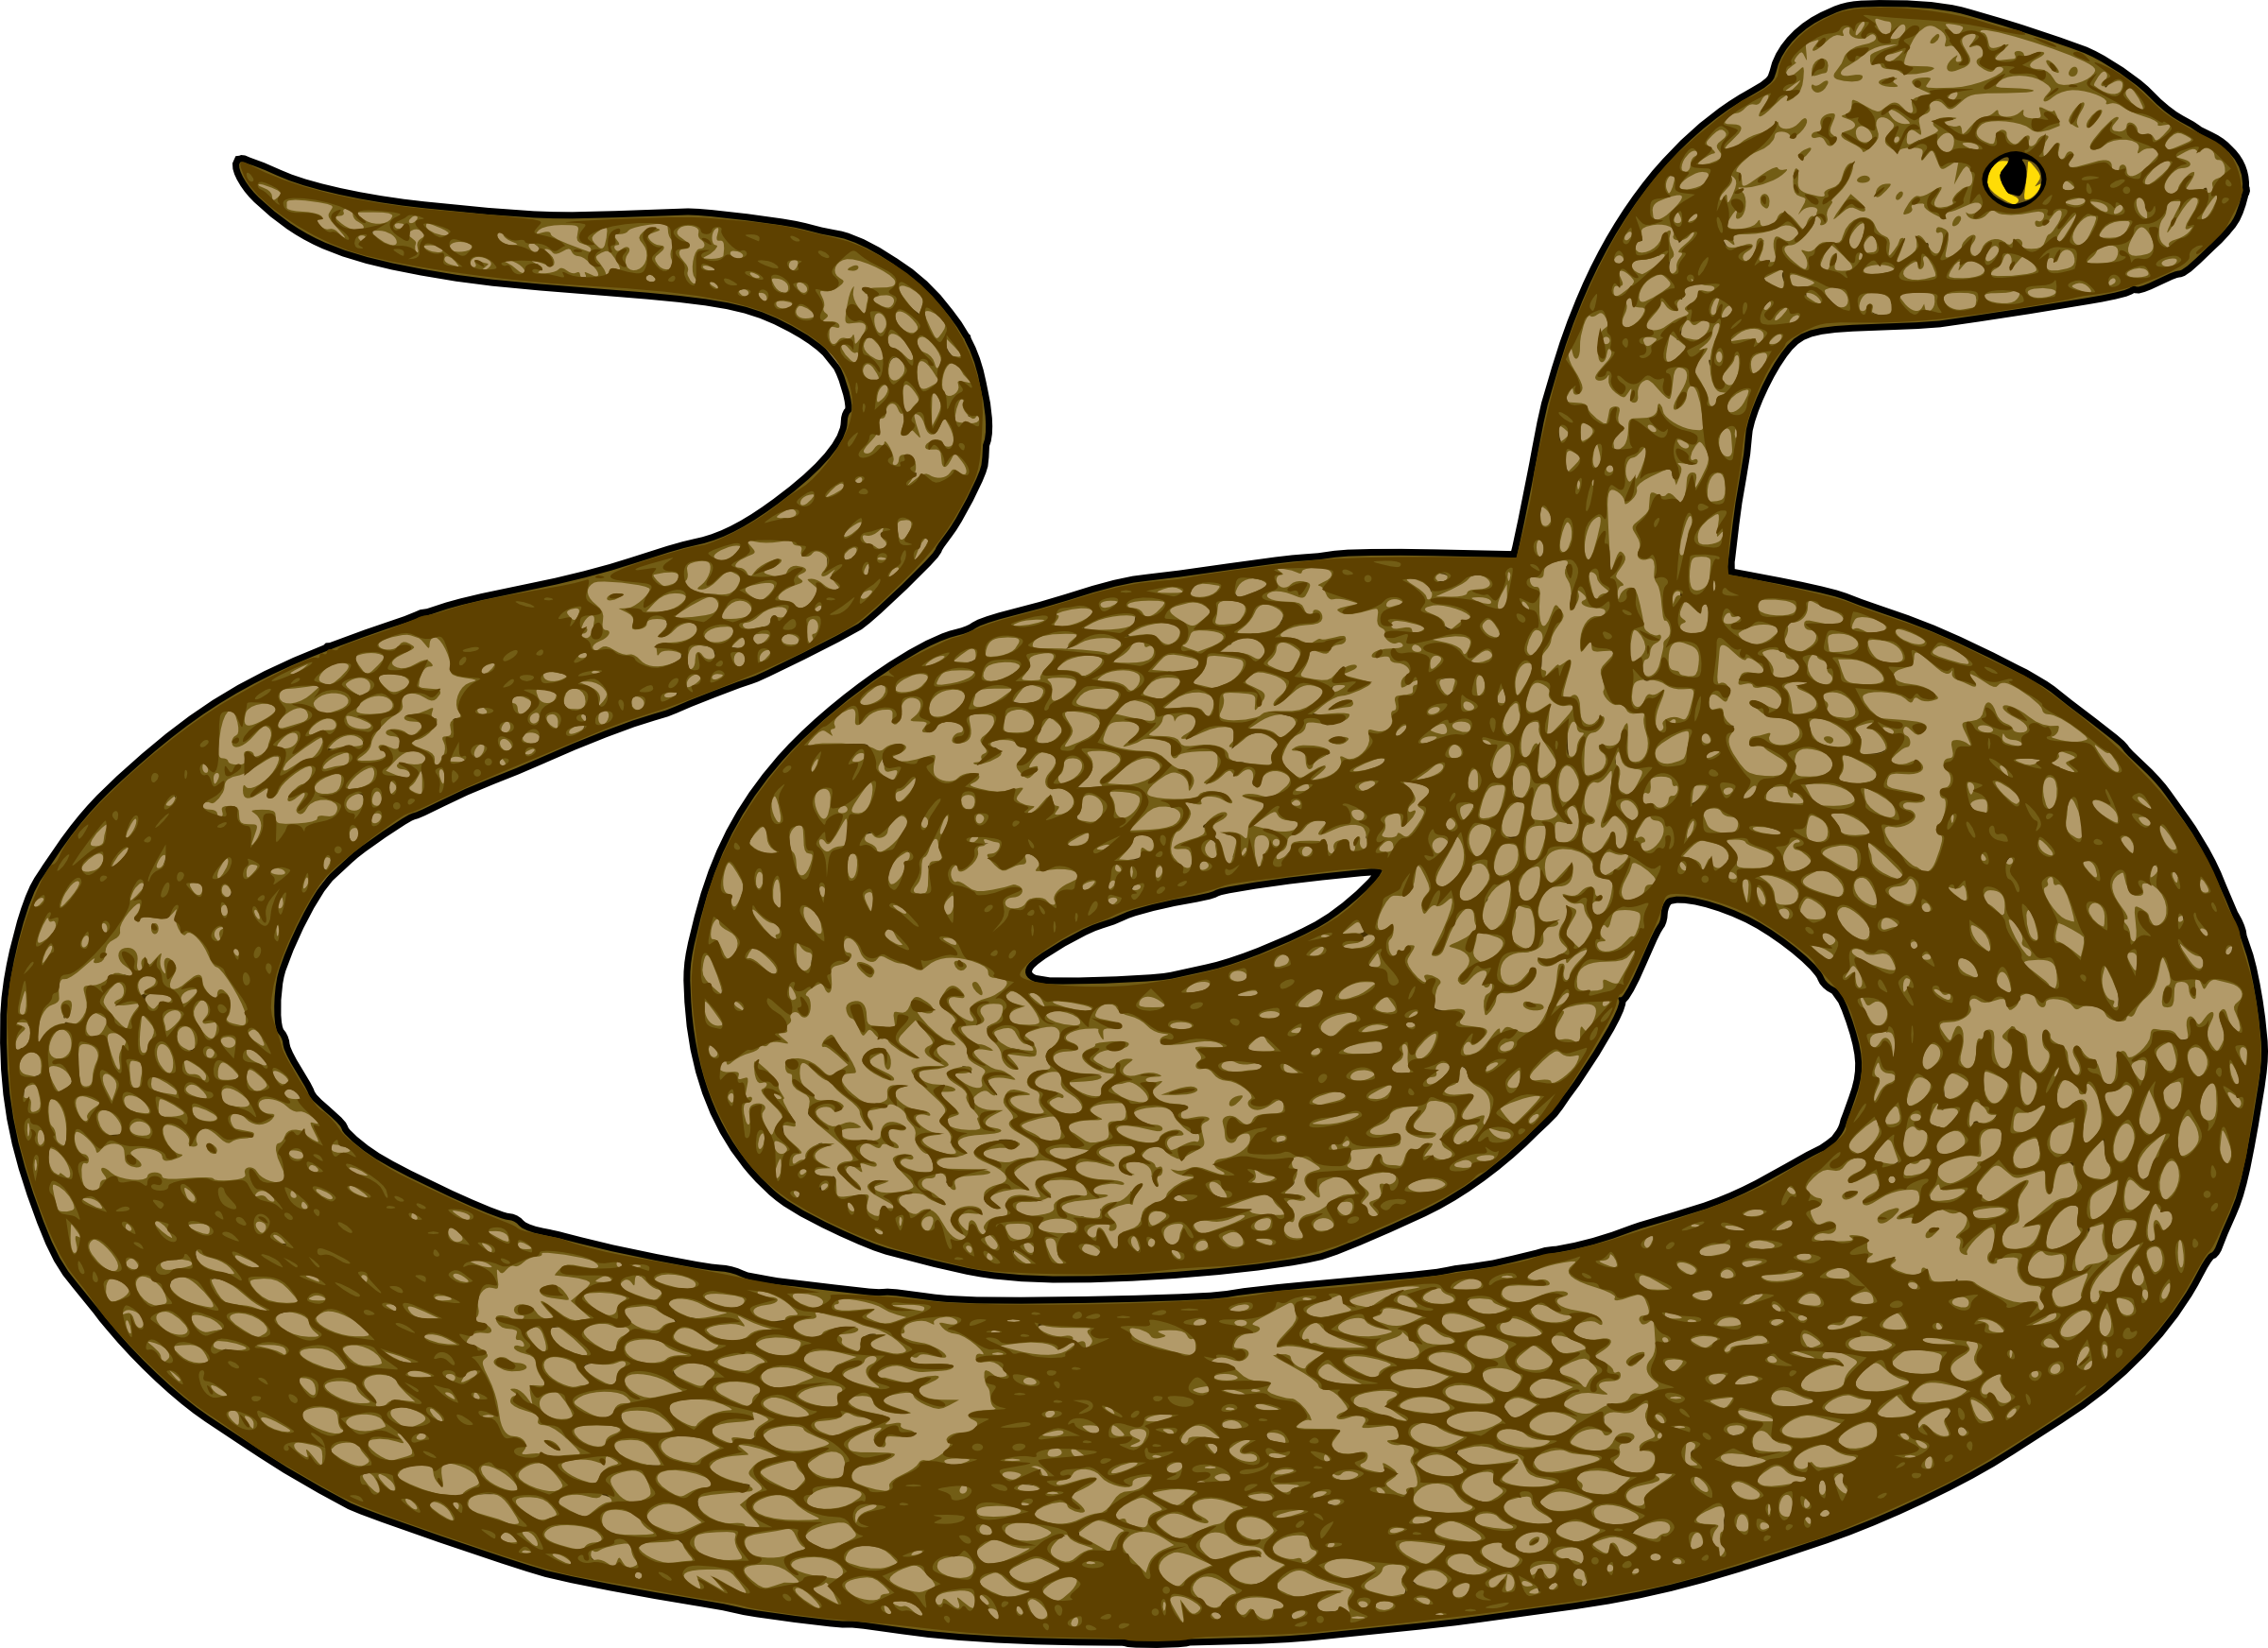 Copperhead snake clipart.